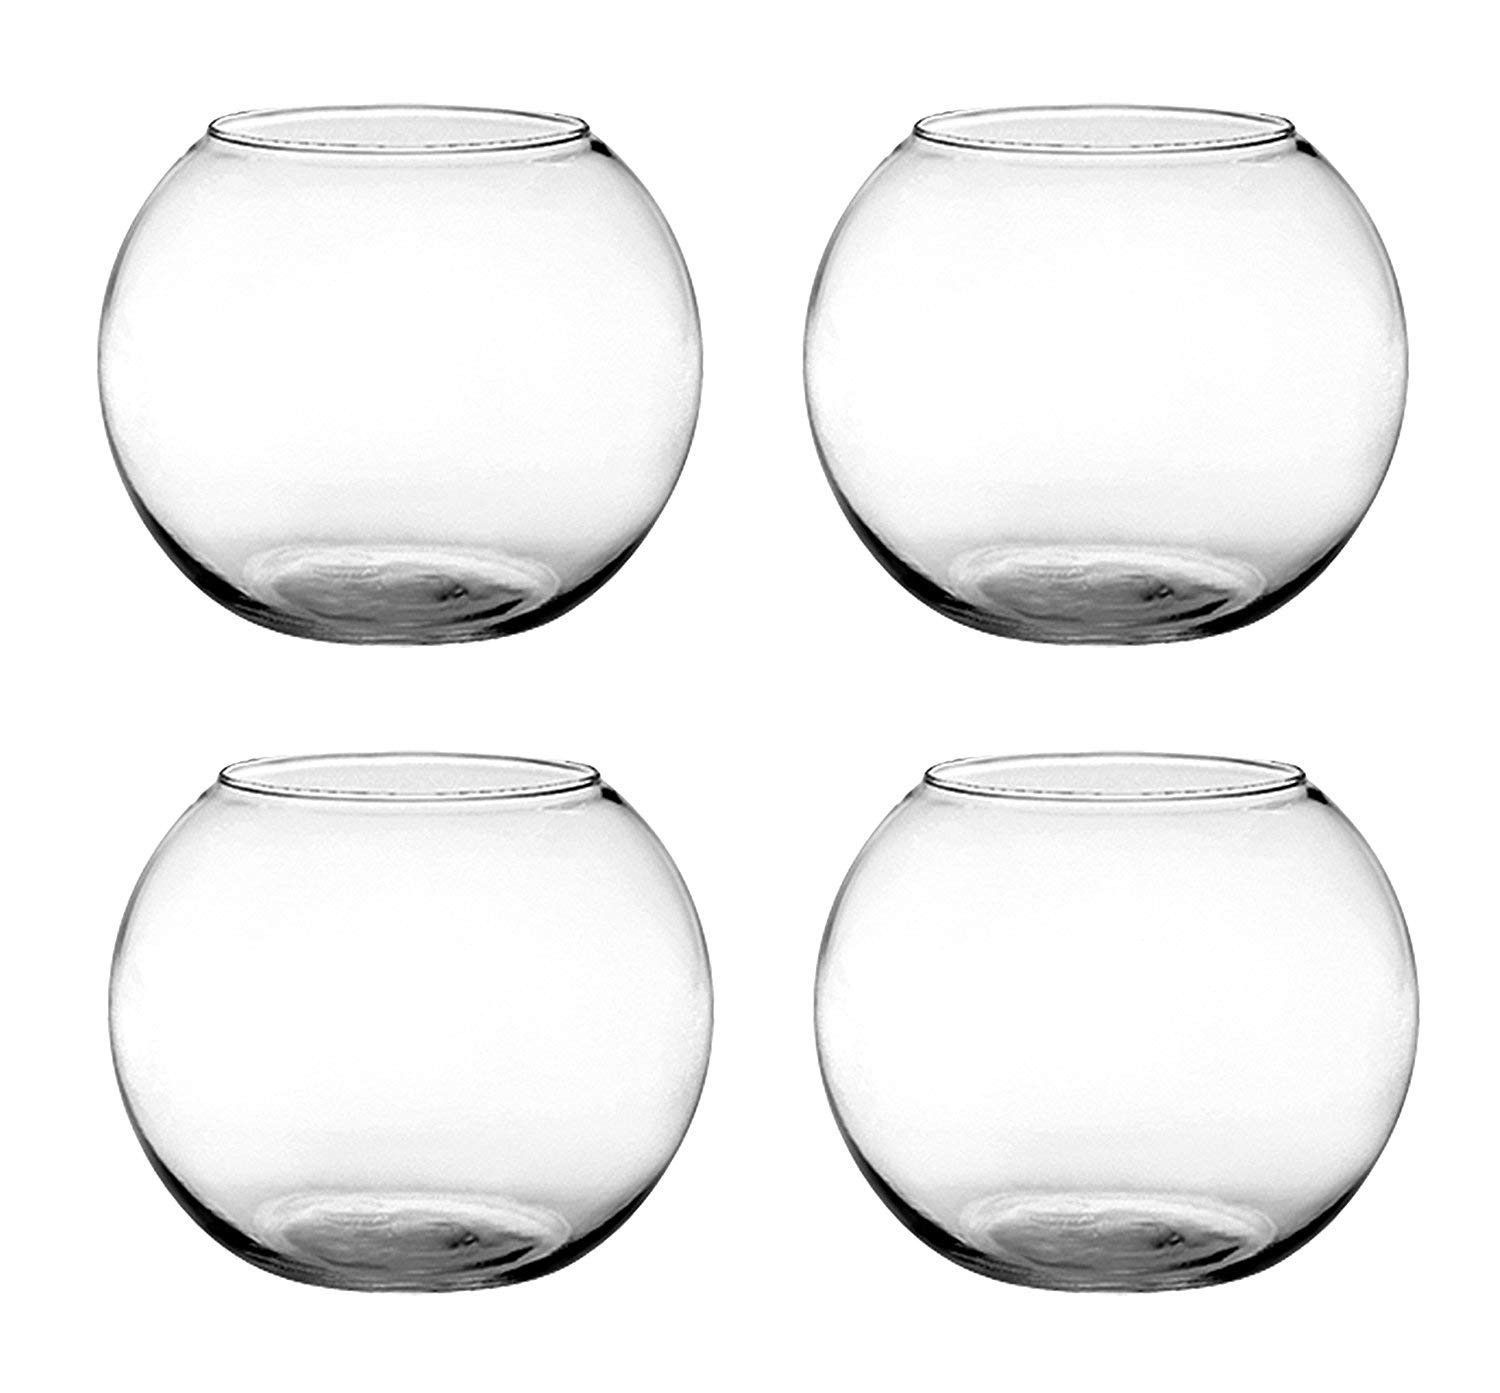 6 x 6 glass cube vases of amazon com floral supply online set of 4 6 rose bowls glass regarding amazon com floral supply online set of 4 6 rose bowls glass round vases for weddings events de